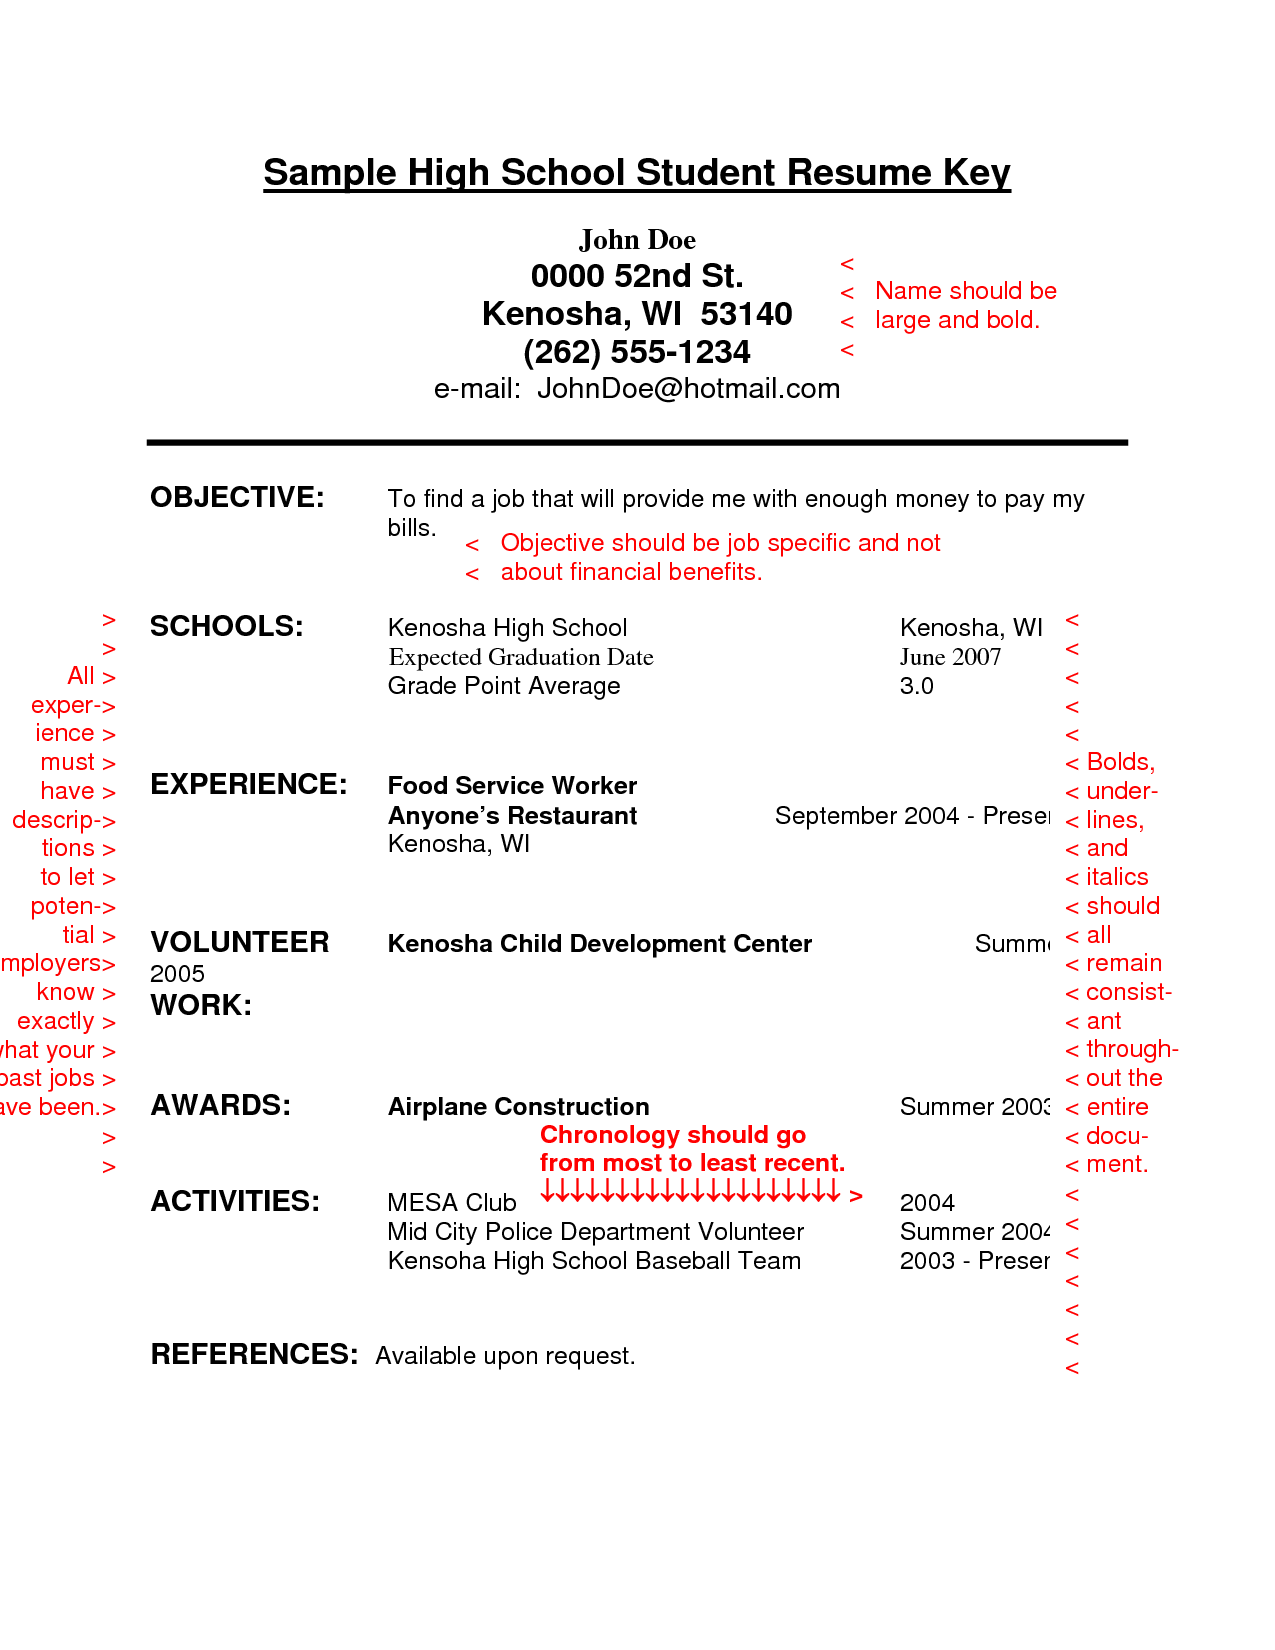 Resume Template For High School Student Resume Sample For High School Students With No Experience  Http